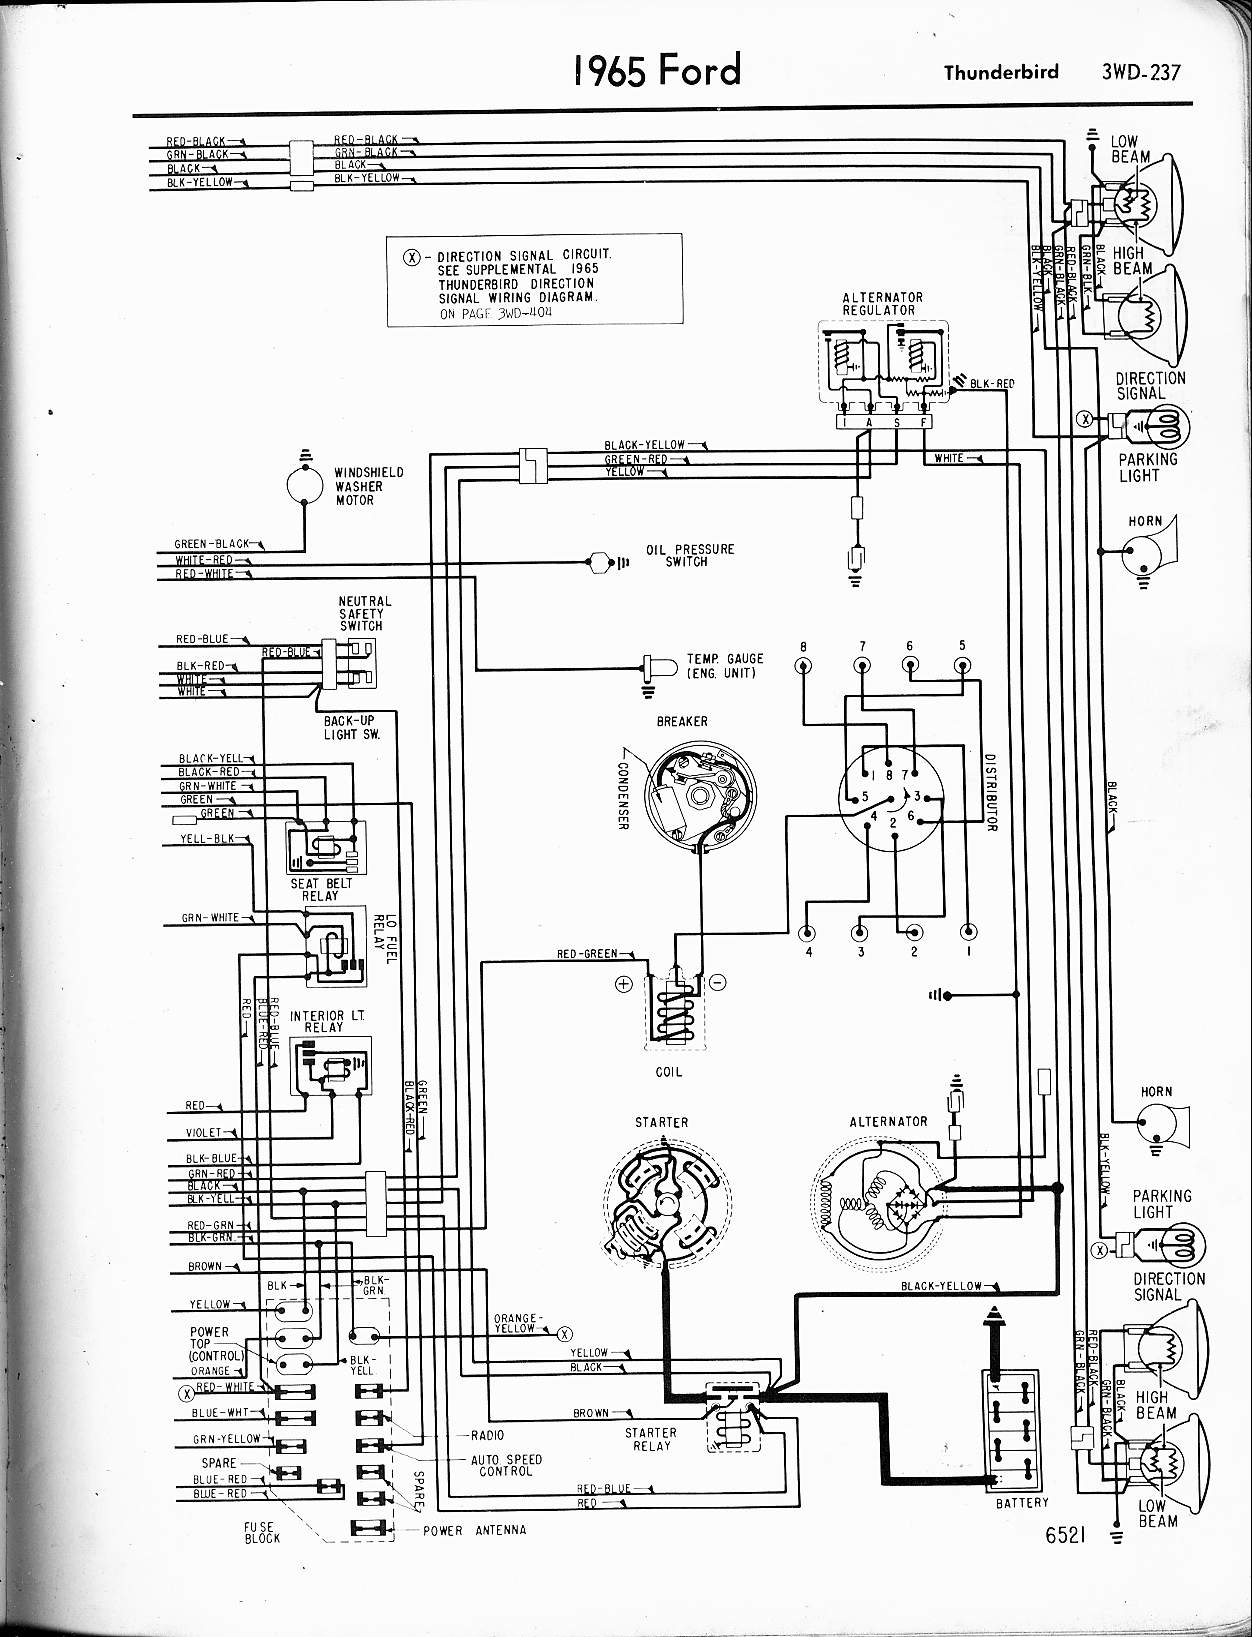 1972 Ford F100 Turn Signal Switch Wiring Help Wire Center 1955 Radio 1961 Diagram Custom U2022 Rh Littlewaves Co 1970